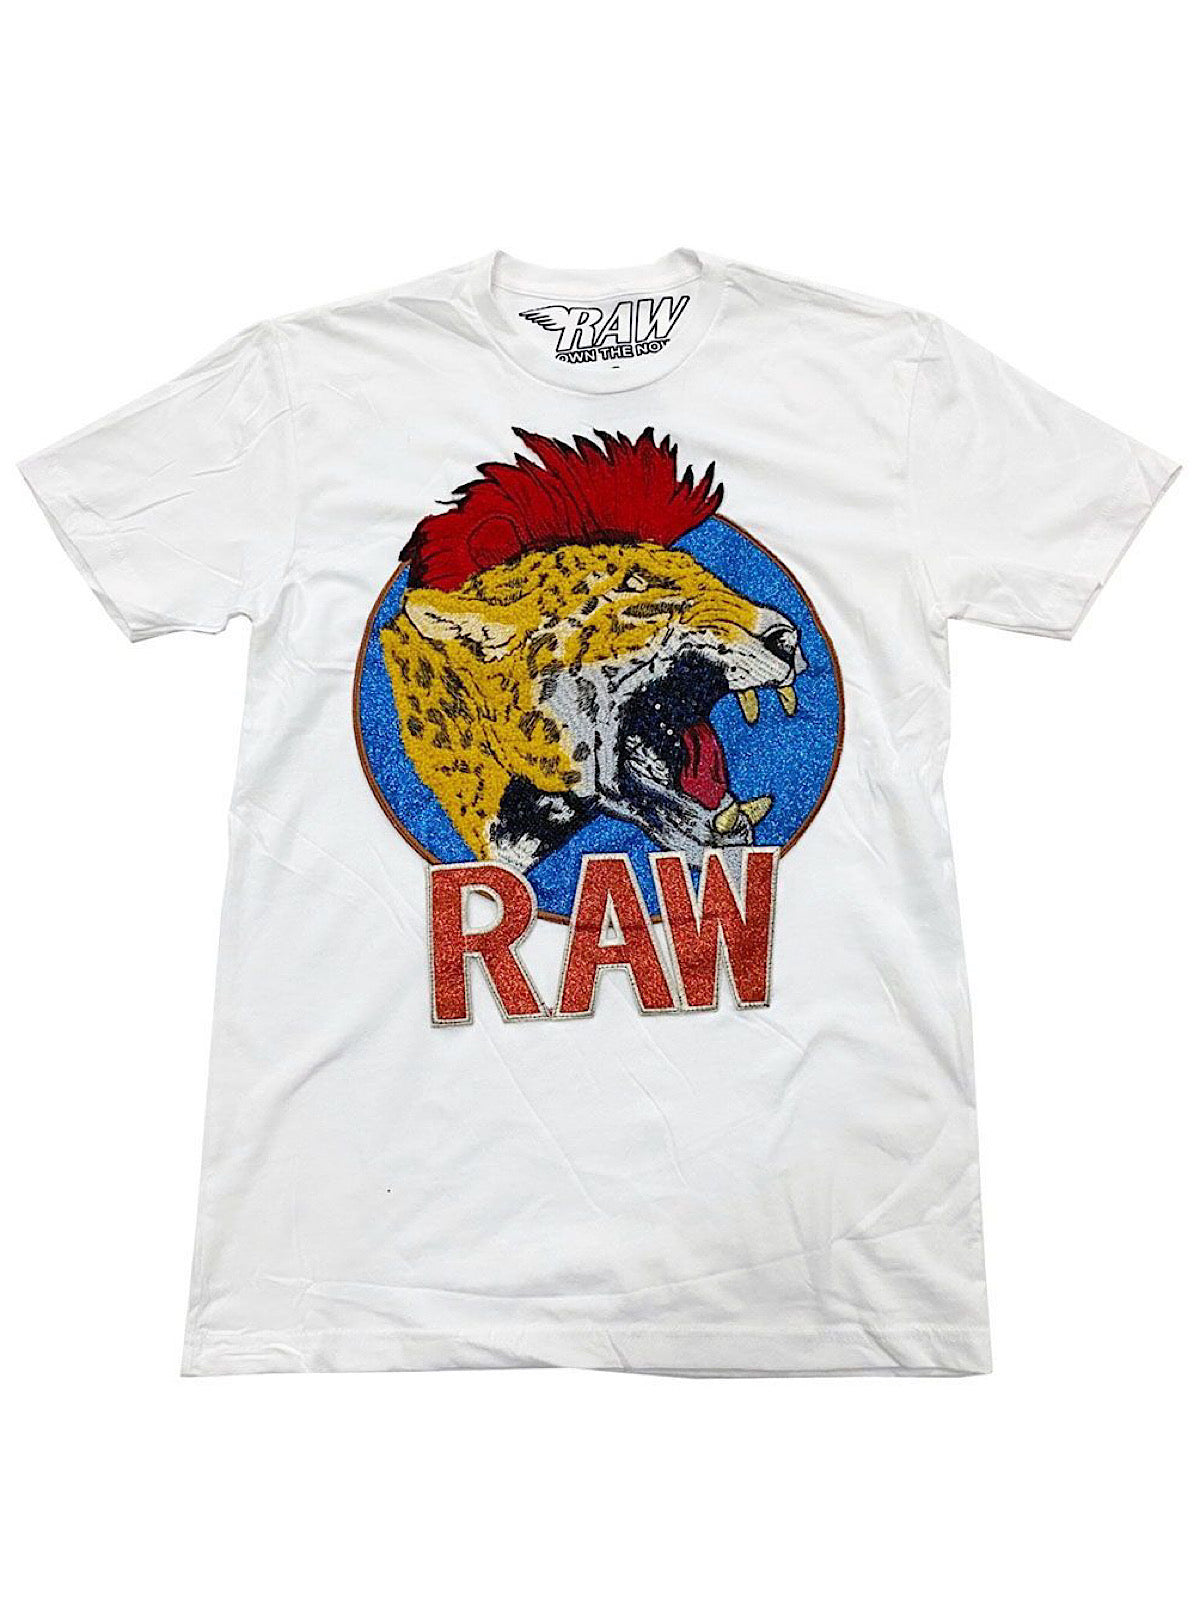 Rawyalty T-Shirt - Leopard - White